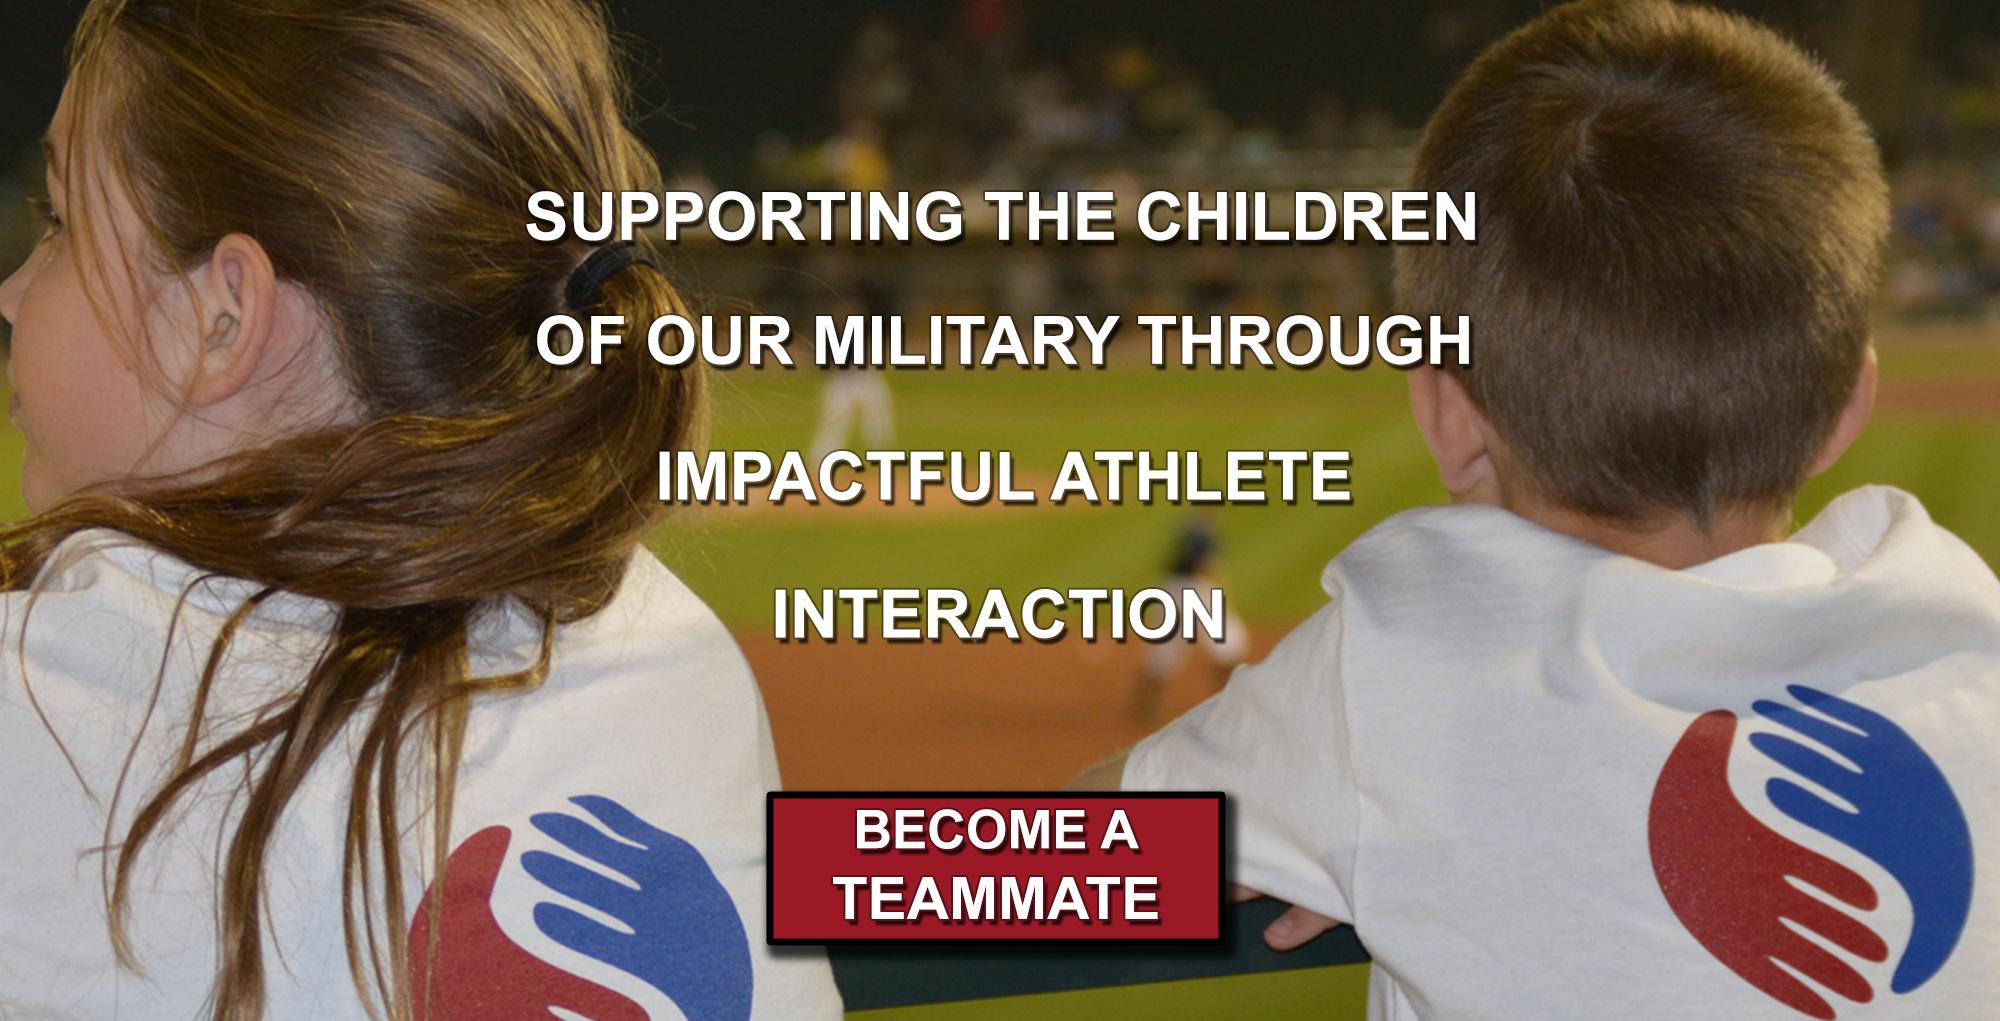 Supporting the Children of Our Military Through Impactful Athlete Interaction